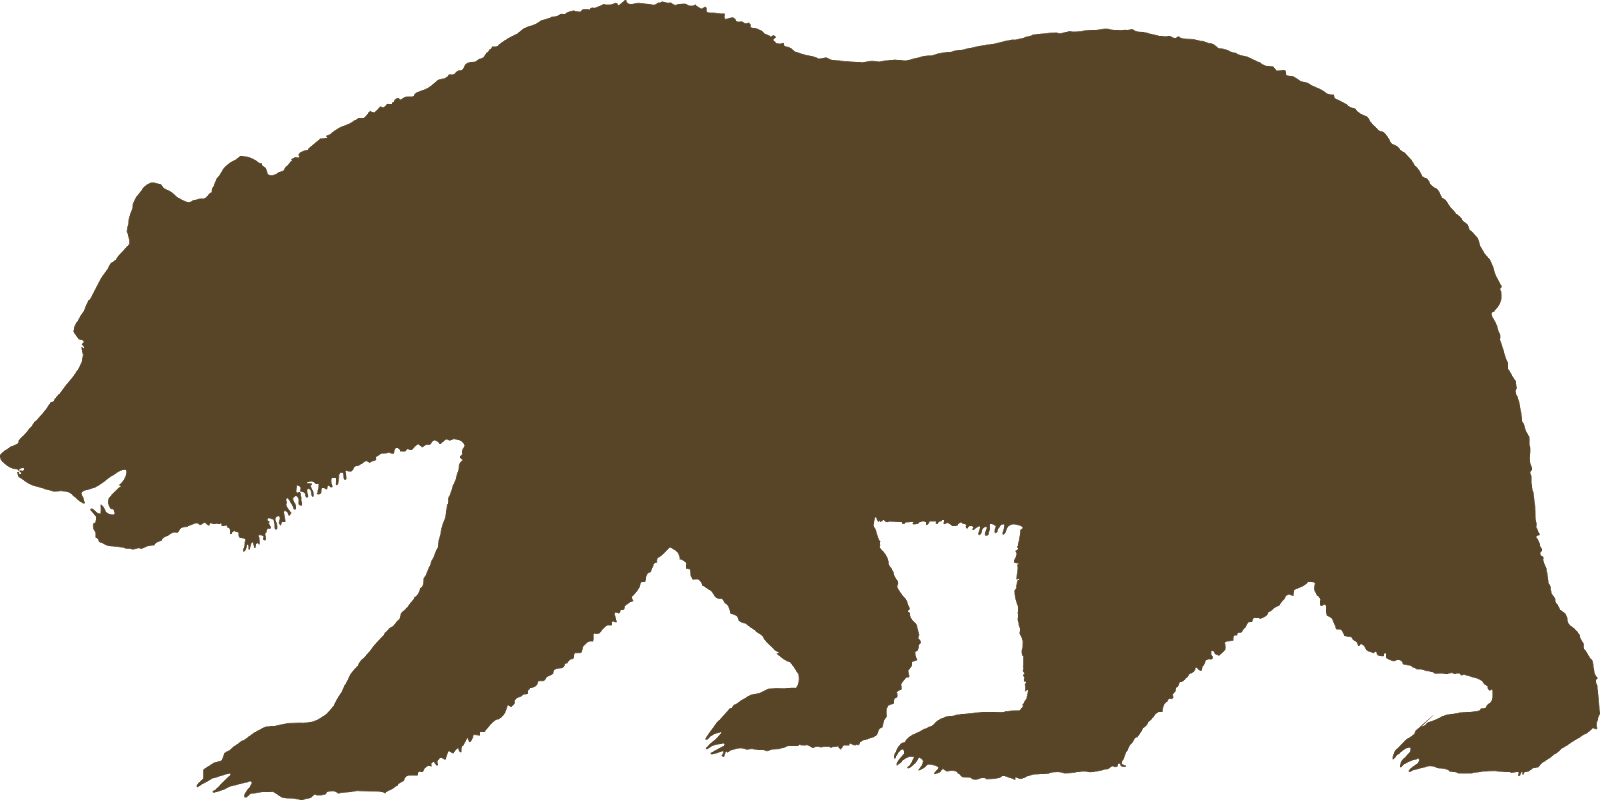 Grizzly bear clipart images clip art stock Grizzly bear clipart clipart images gallery for free download ... clip art stock